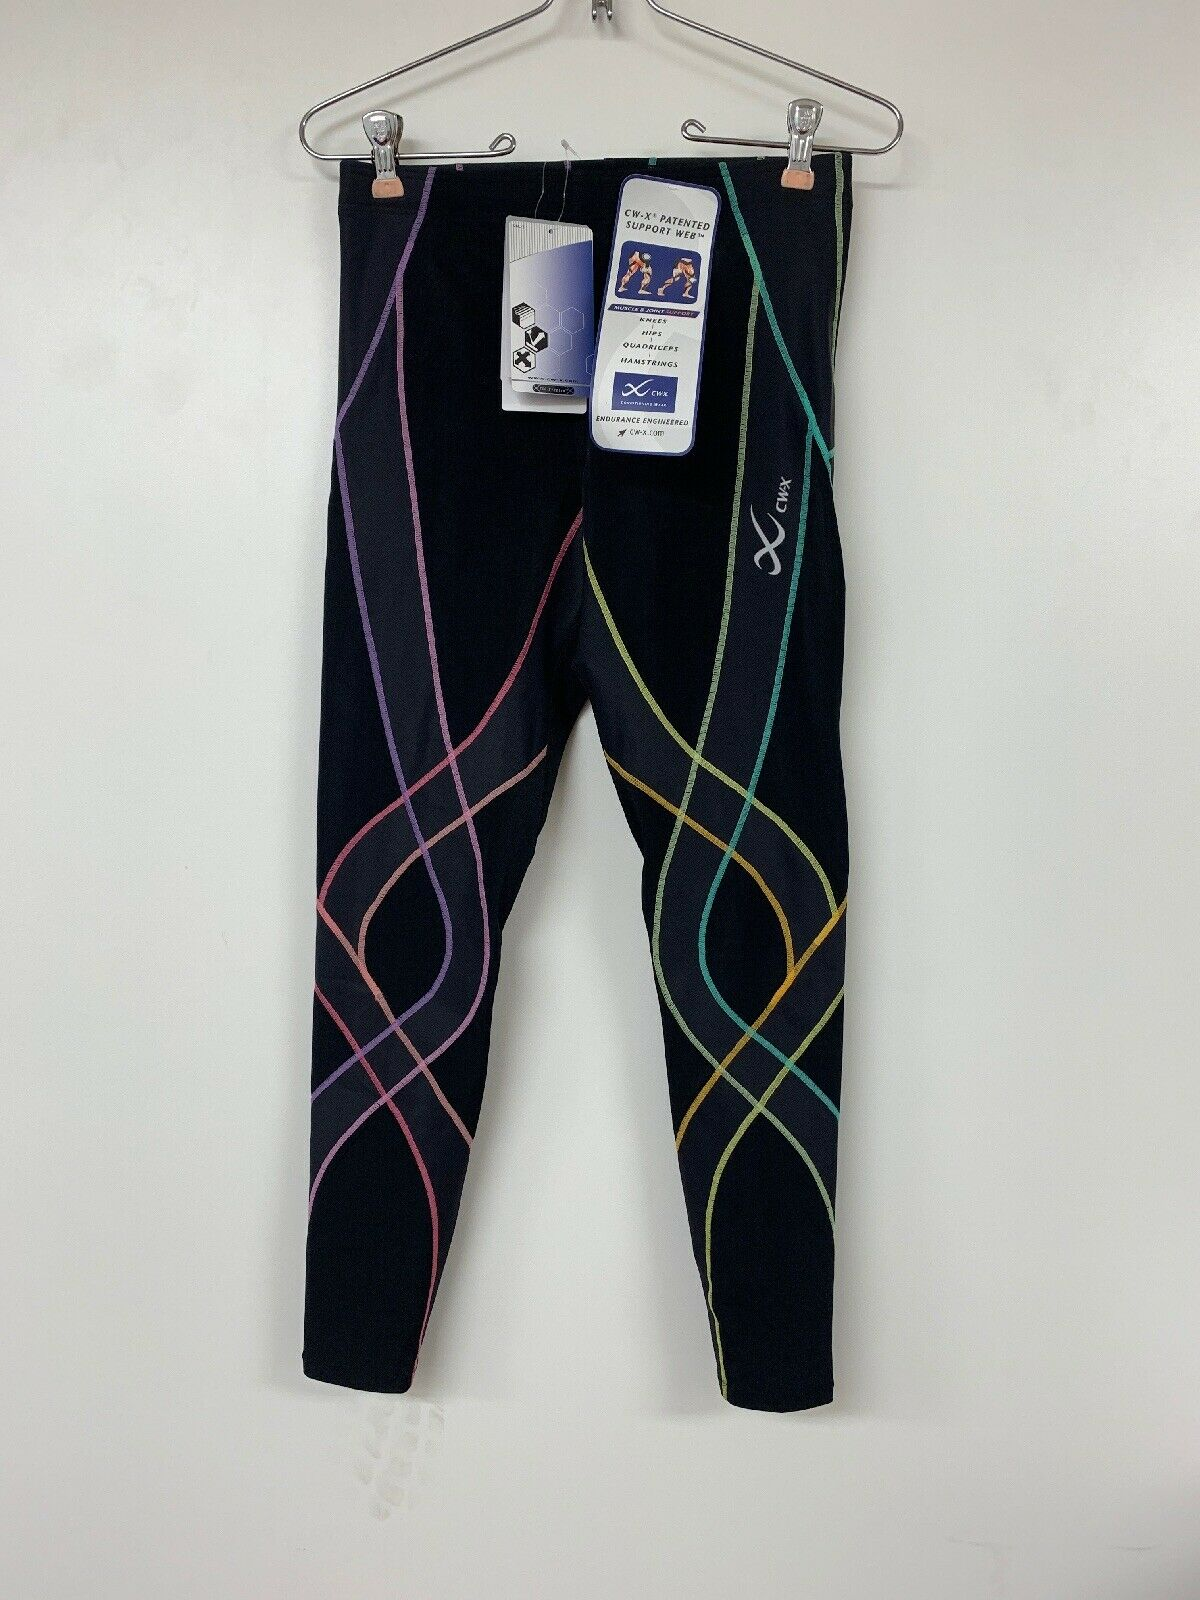 CWX donna's Mid Rise Full Length Stabilyx Compression Legging Tights Med New